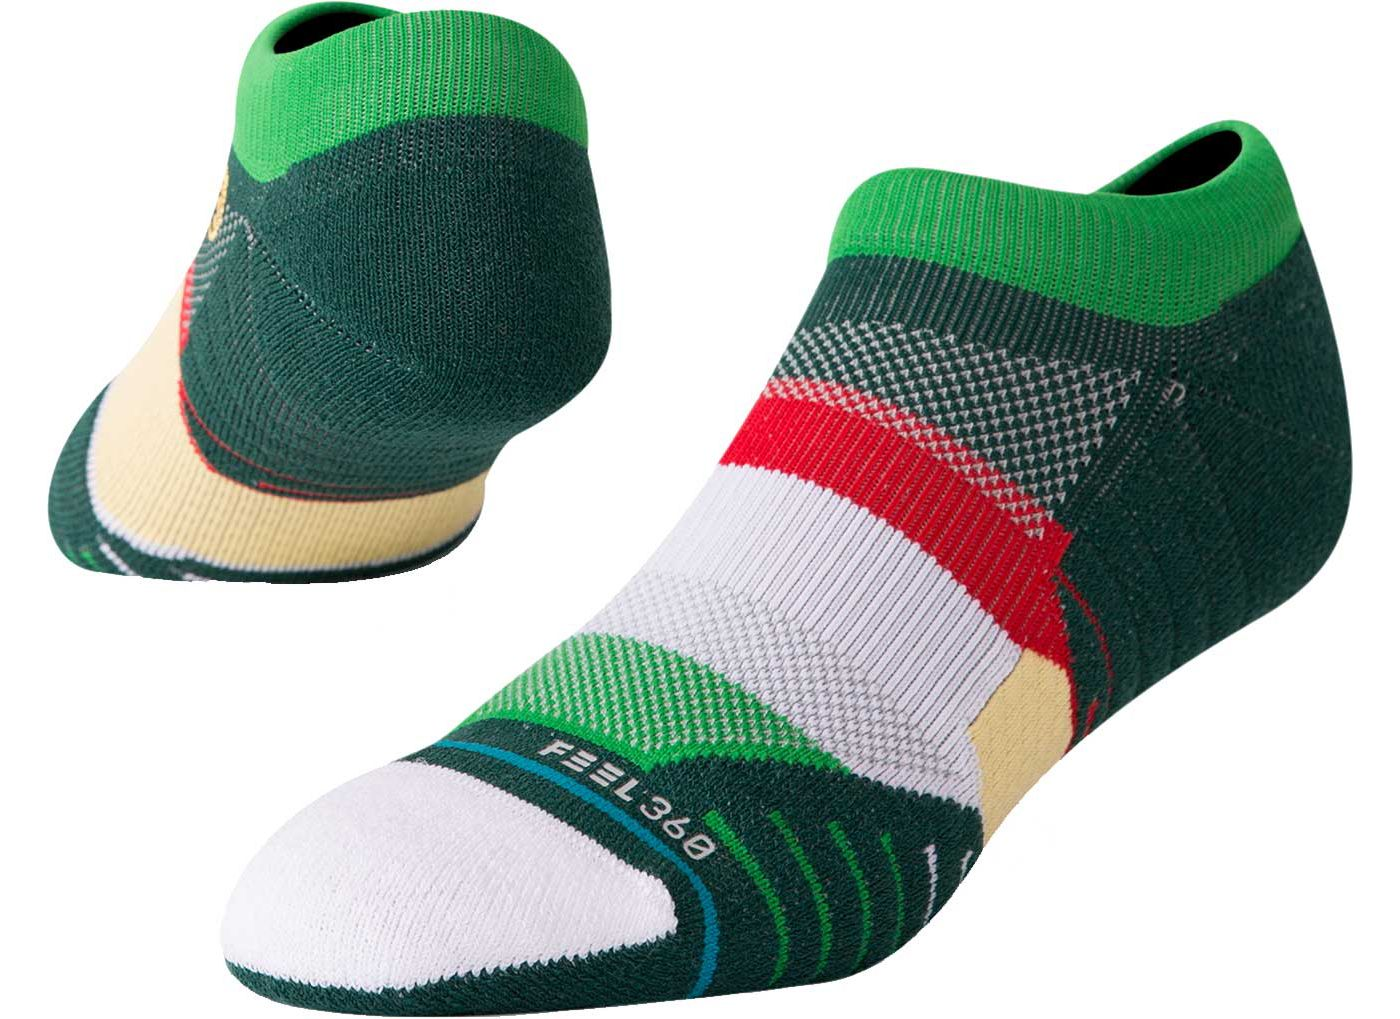 Stance Men's Jack Nicklaus Low Cut Socks